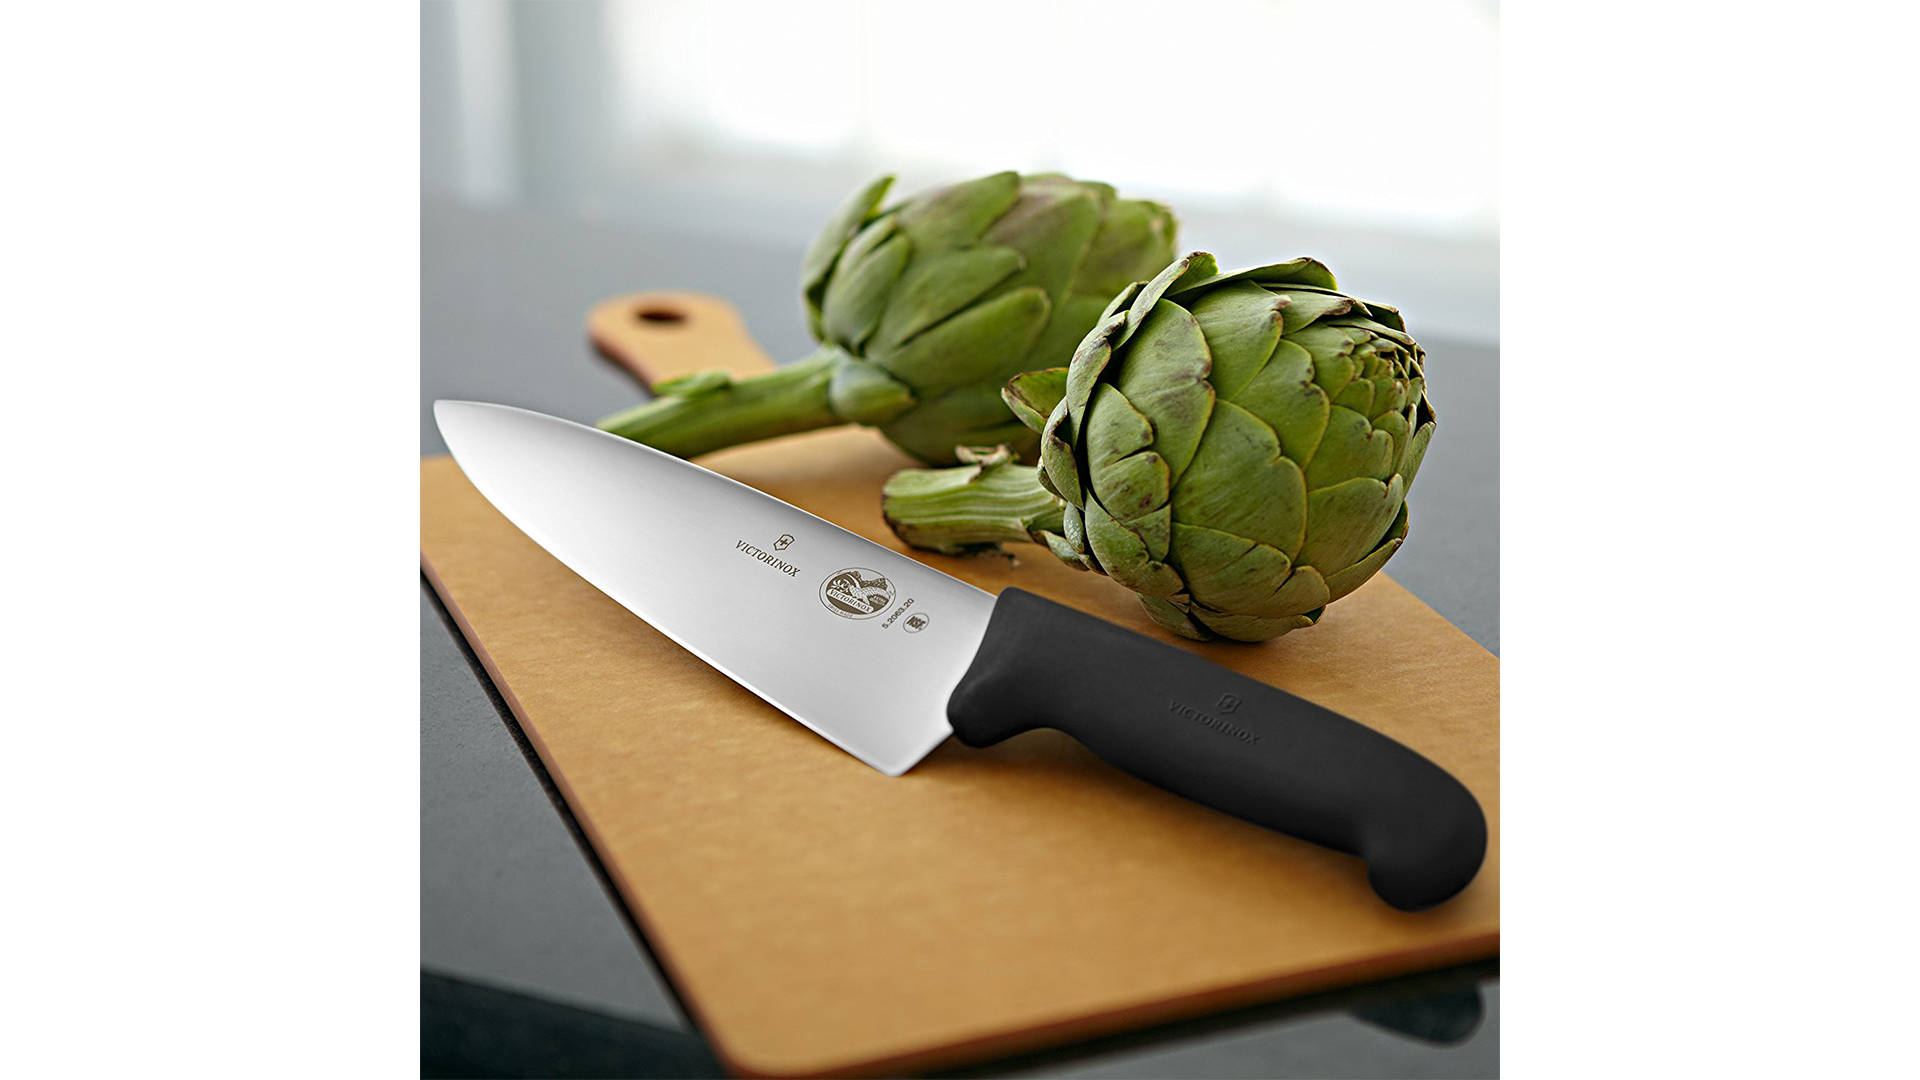 This Is the $44 Kitchen Knife With 5,000 Amazon Reviews